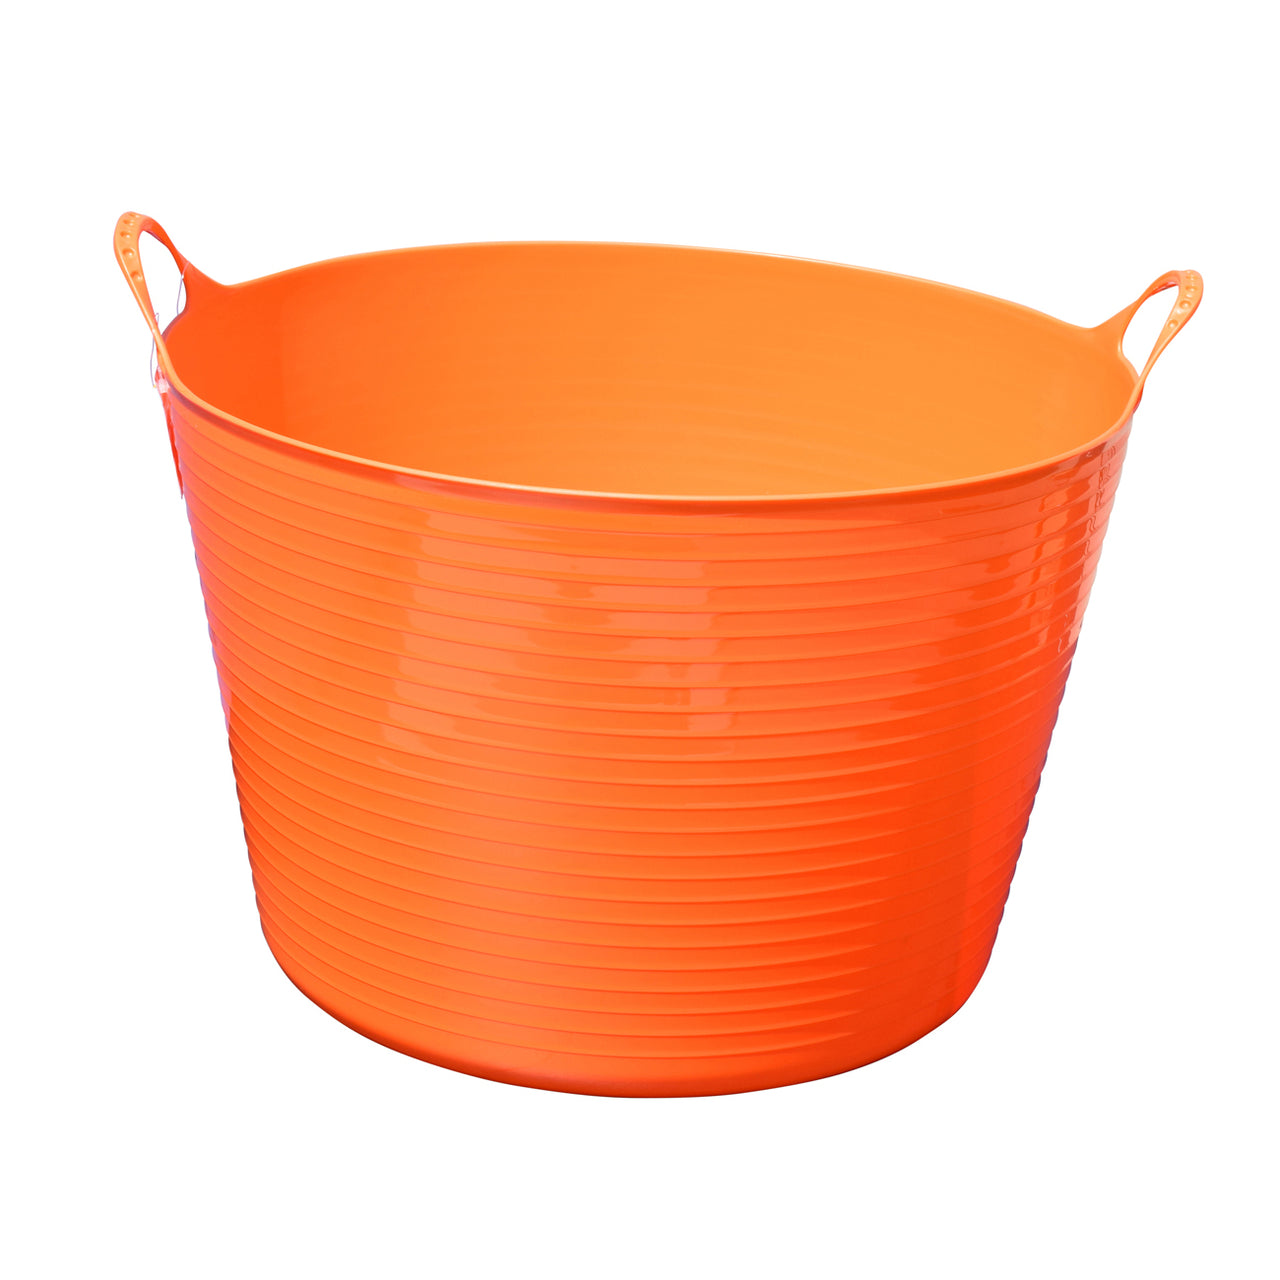 Tuff Stuff Flex Tub - Orange (4 Sizes) - Buckets Pails Feeders Scoops Tubs Bottles Tuff Stuff - Canada